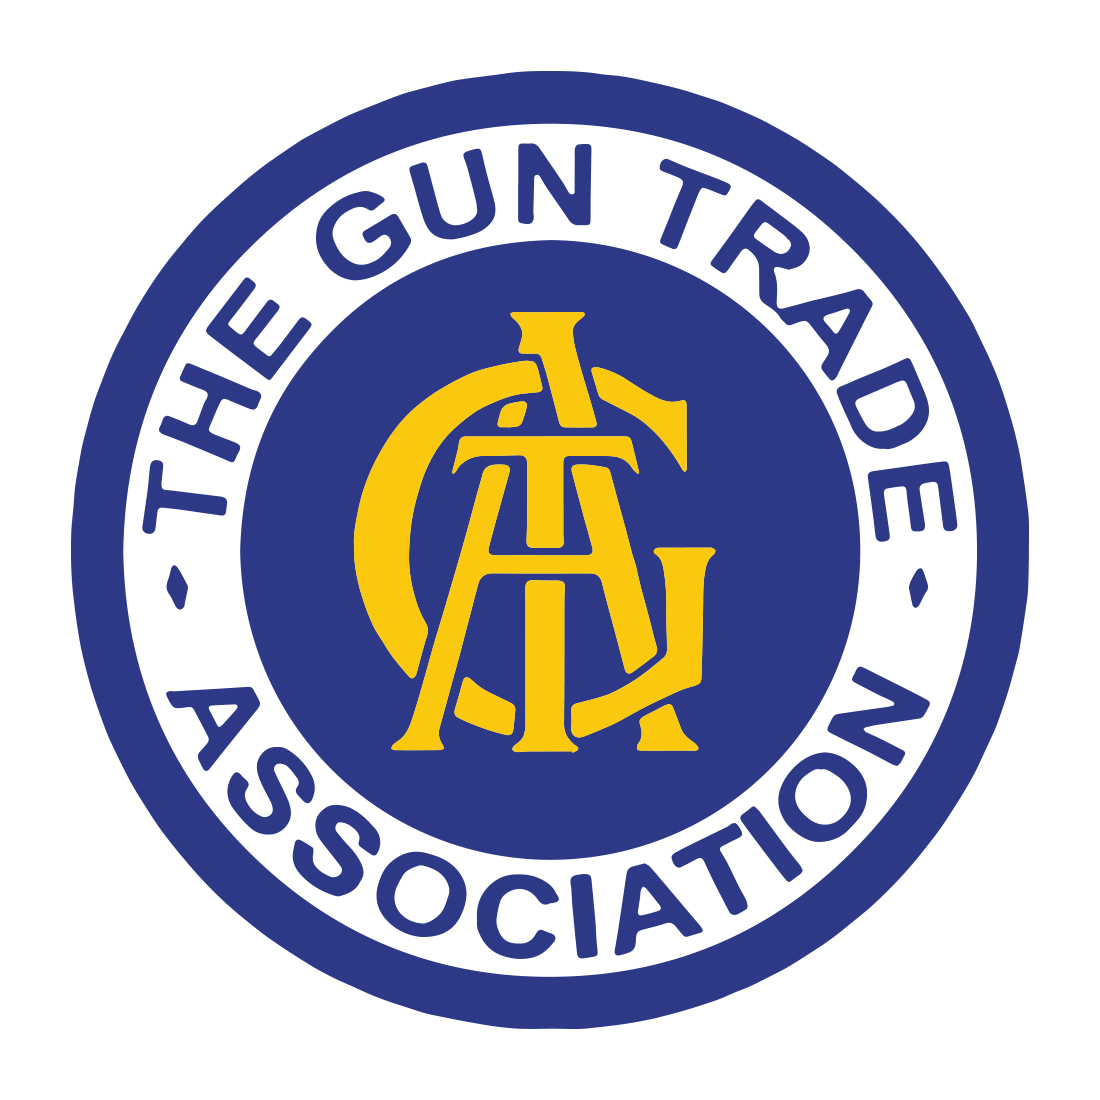 We are a member of the Gun Trade Association (GTA ltd)